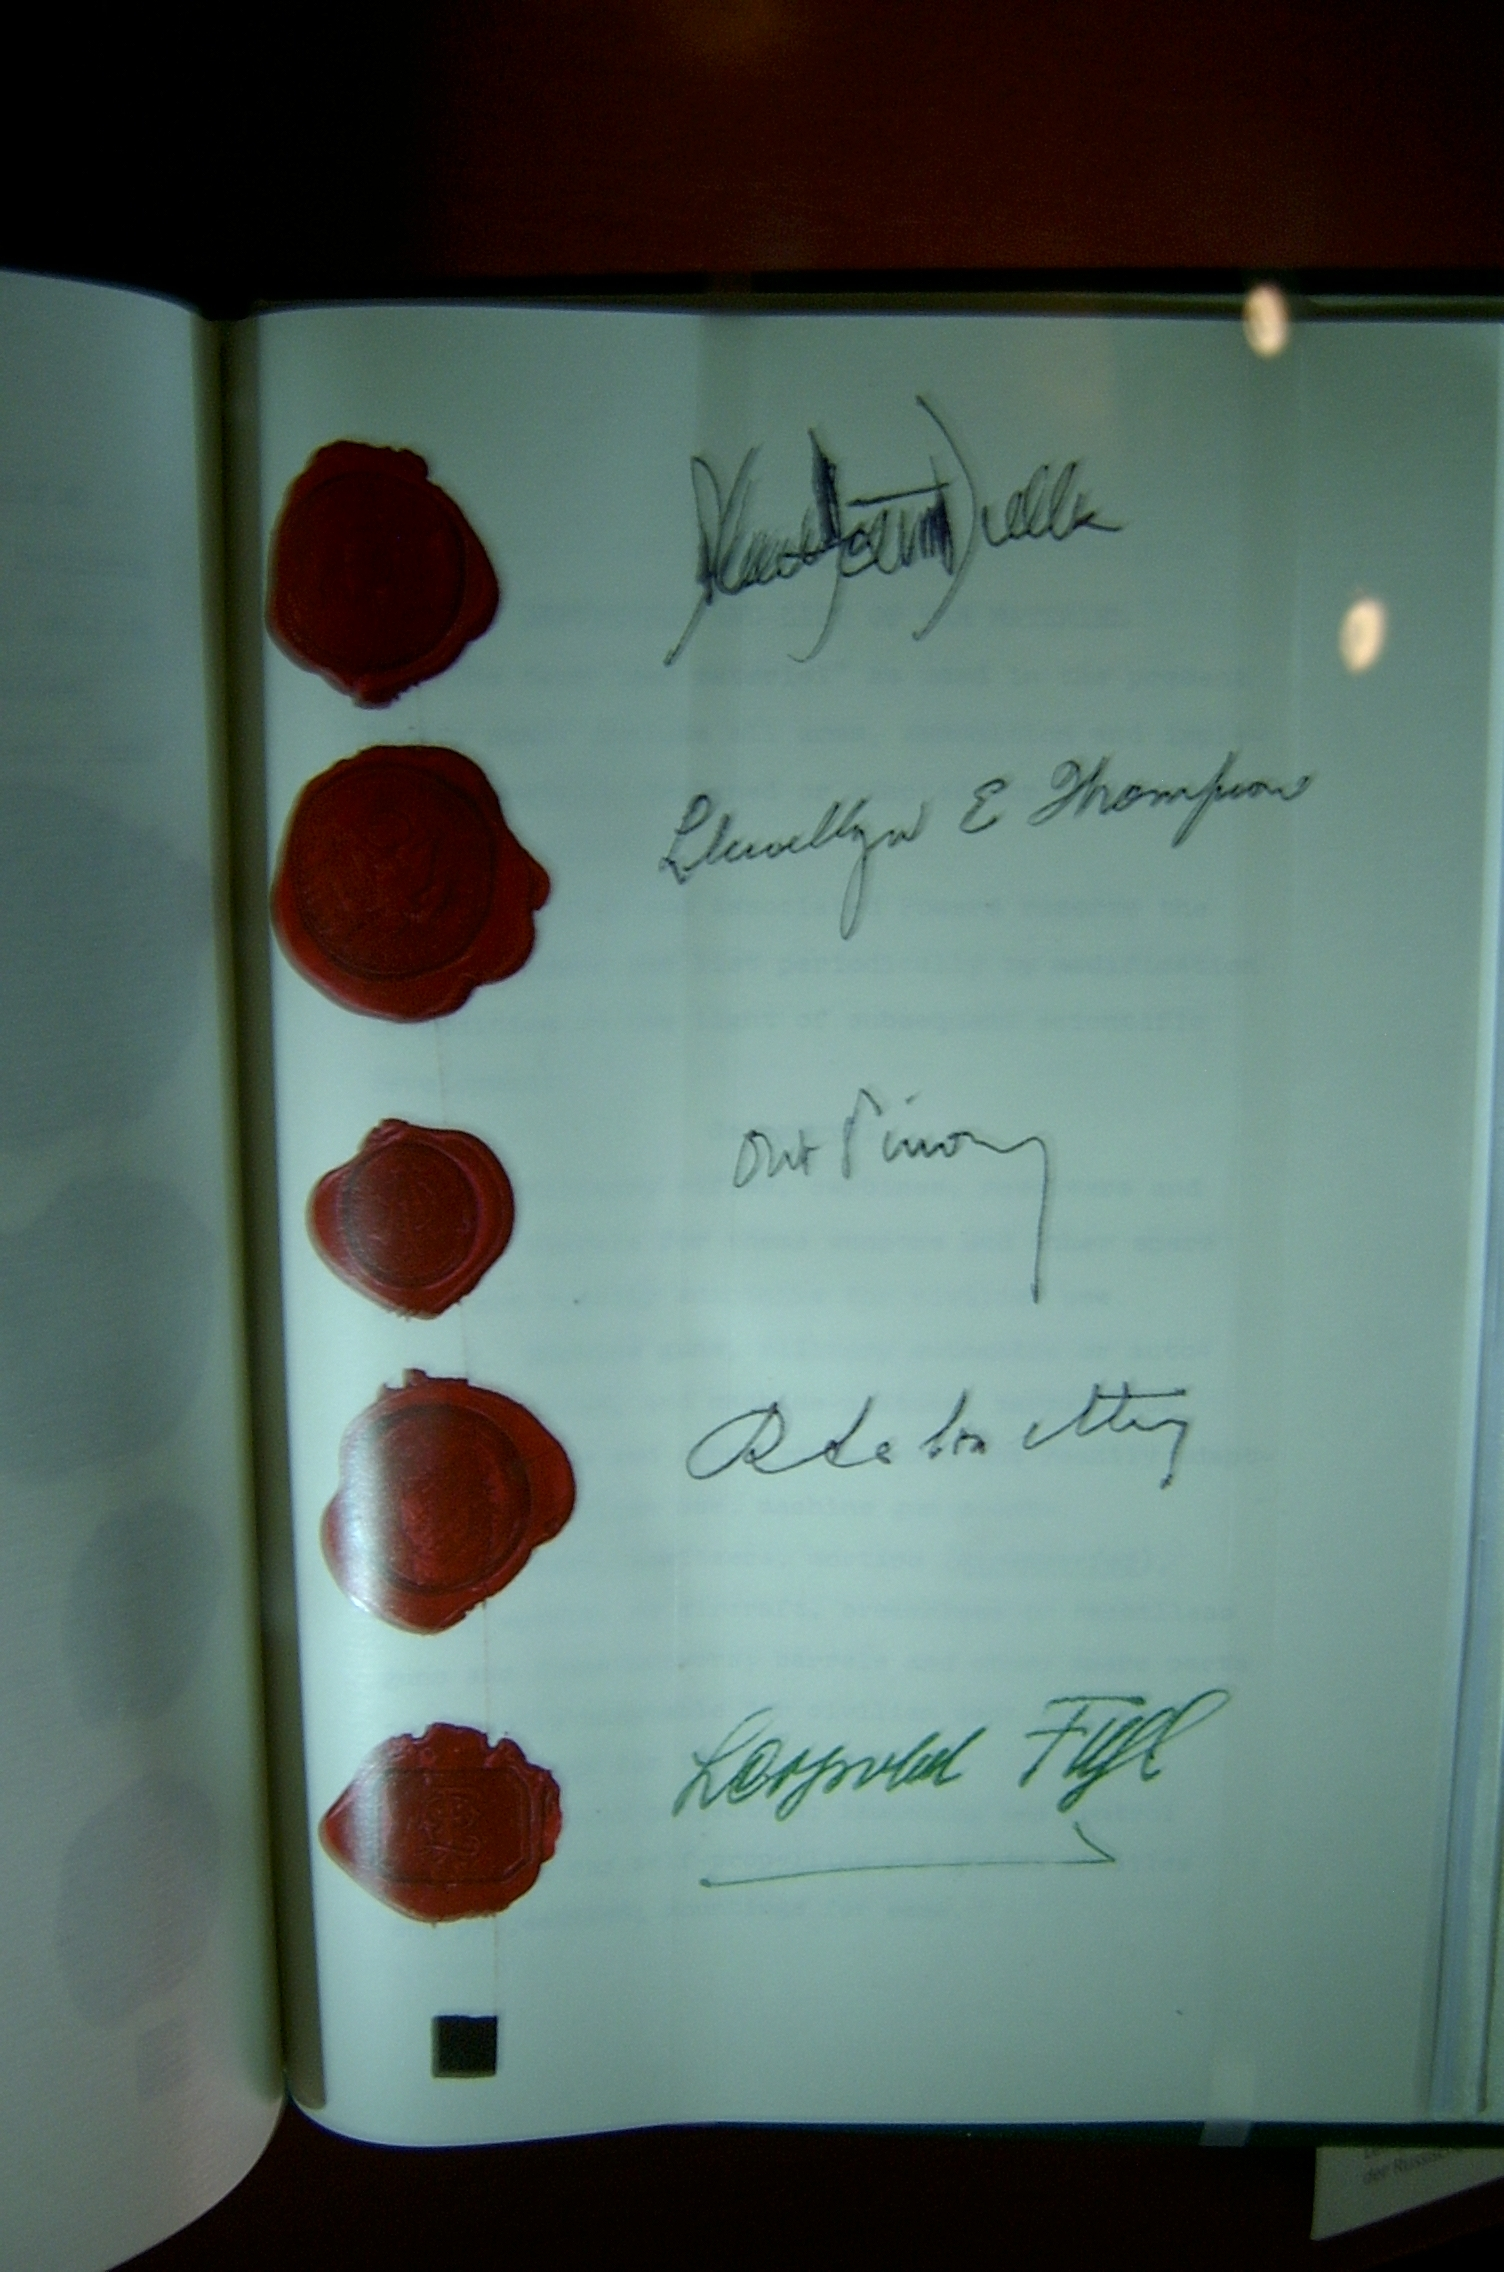 Karl Gruber: Austrian State Treaty, signatures of the five minsters and chancellor, exhibition 2005 at the Schallaburg